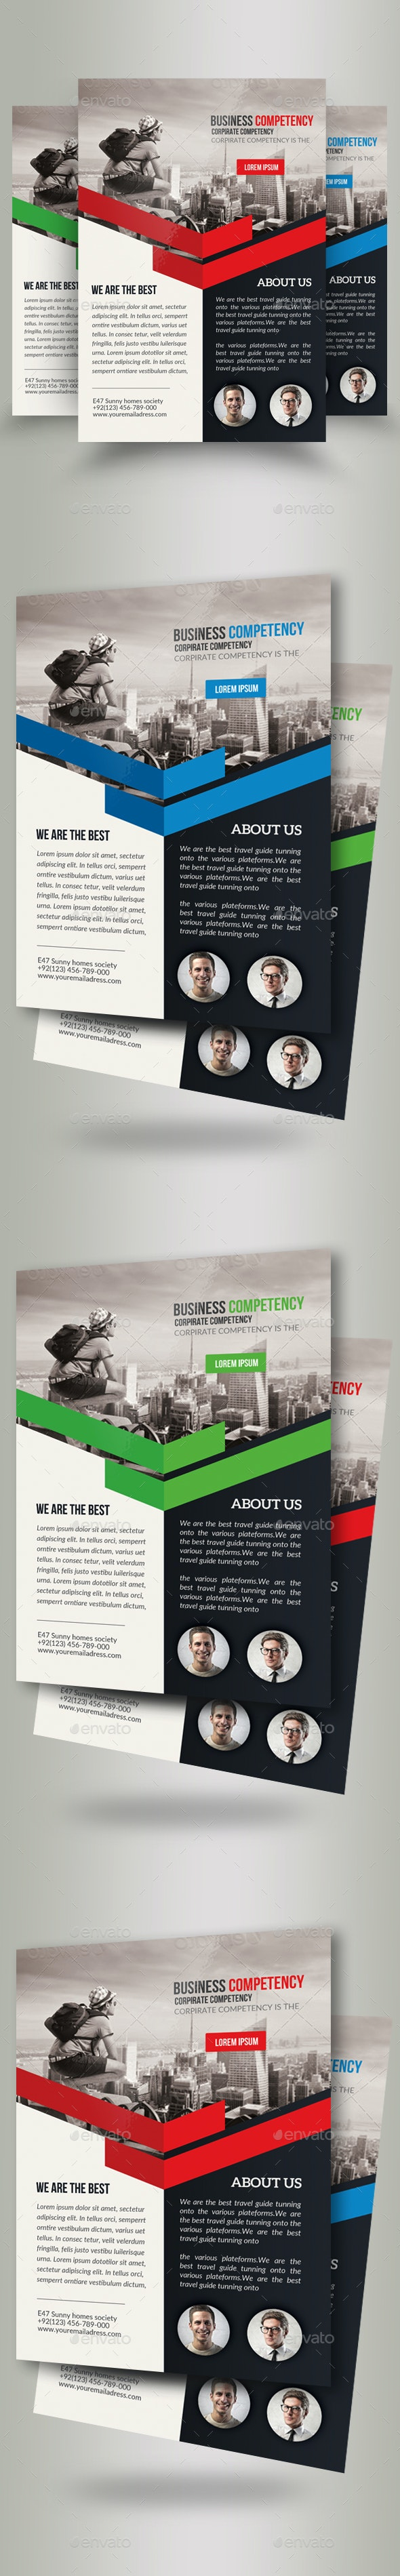 Business Travelling Agency Flyer Template - Corporate Flyers